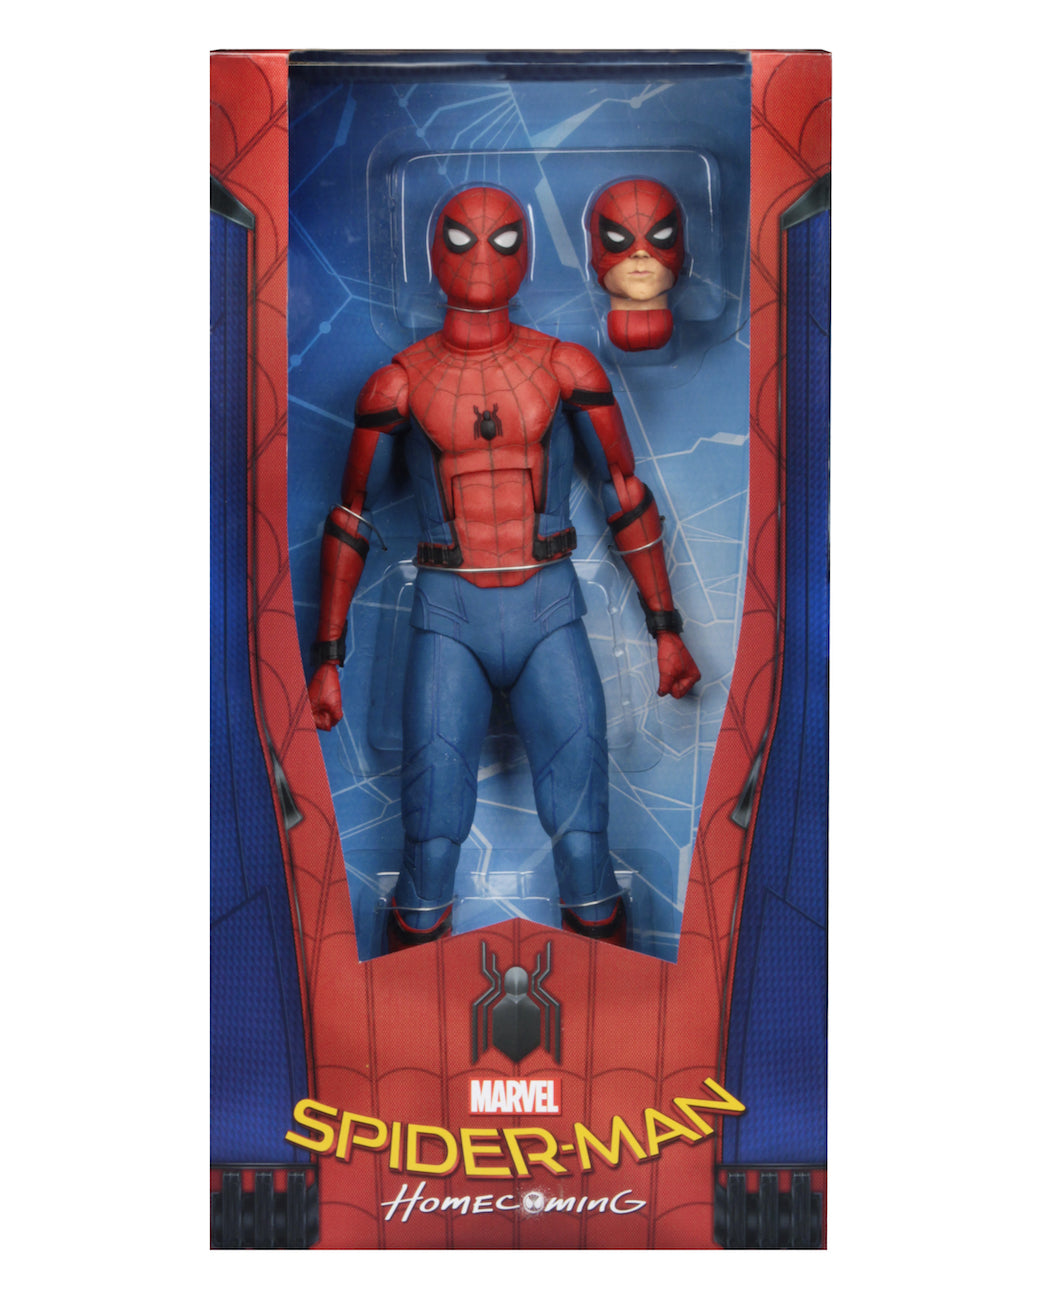 Marvel's Spider-Man: Homecoming NECA 1/4 Scale Action Figure